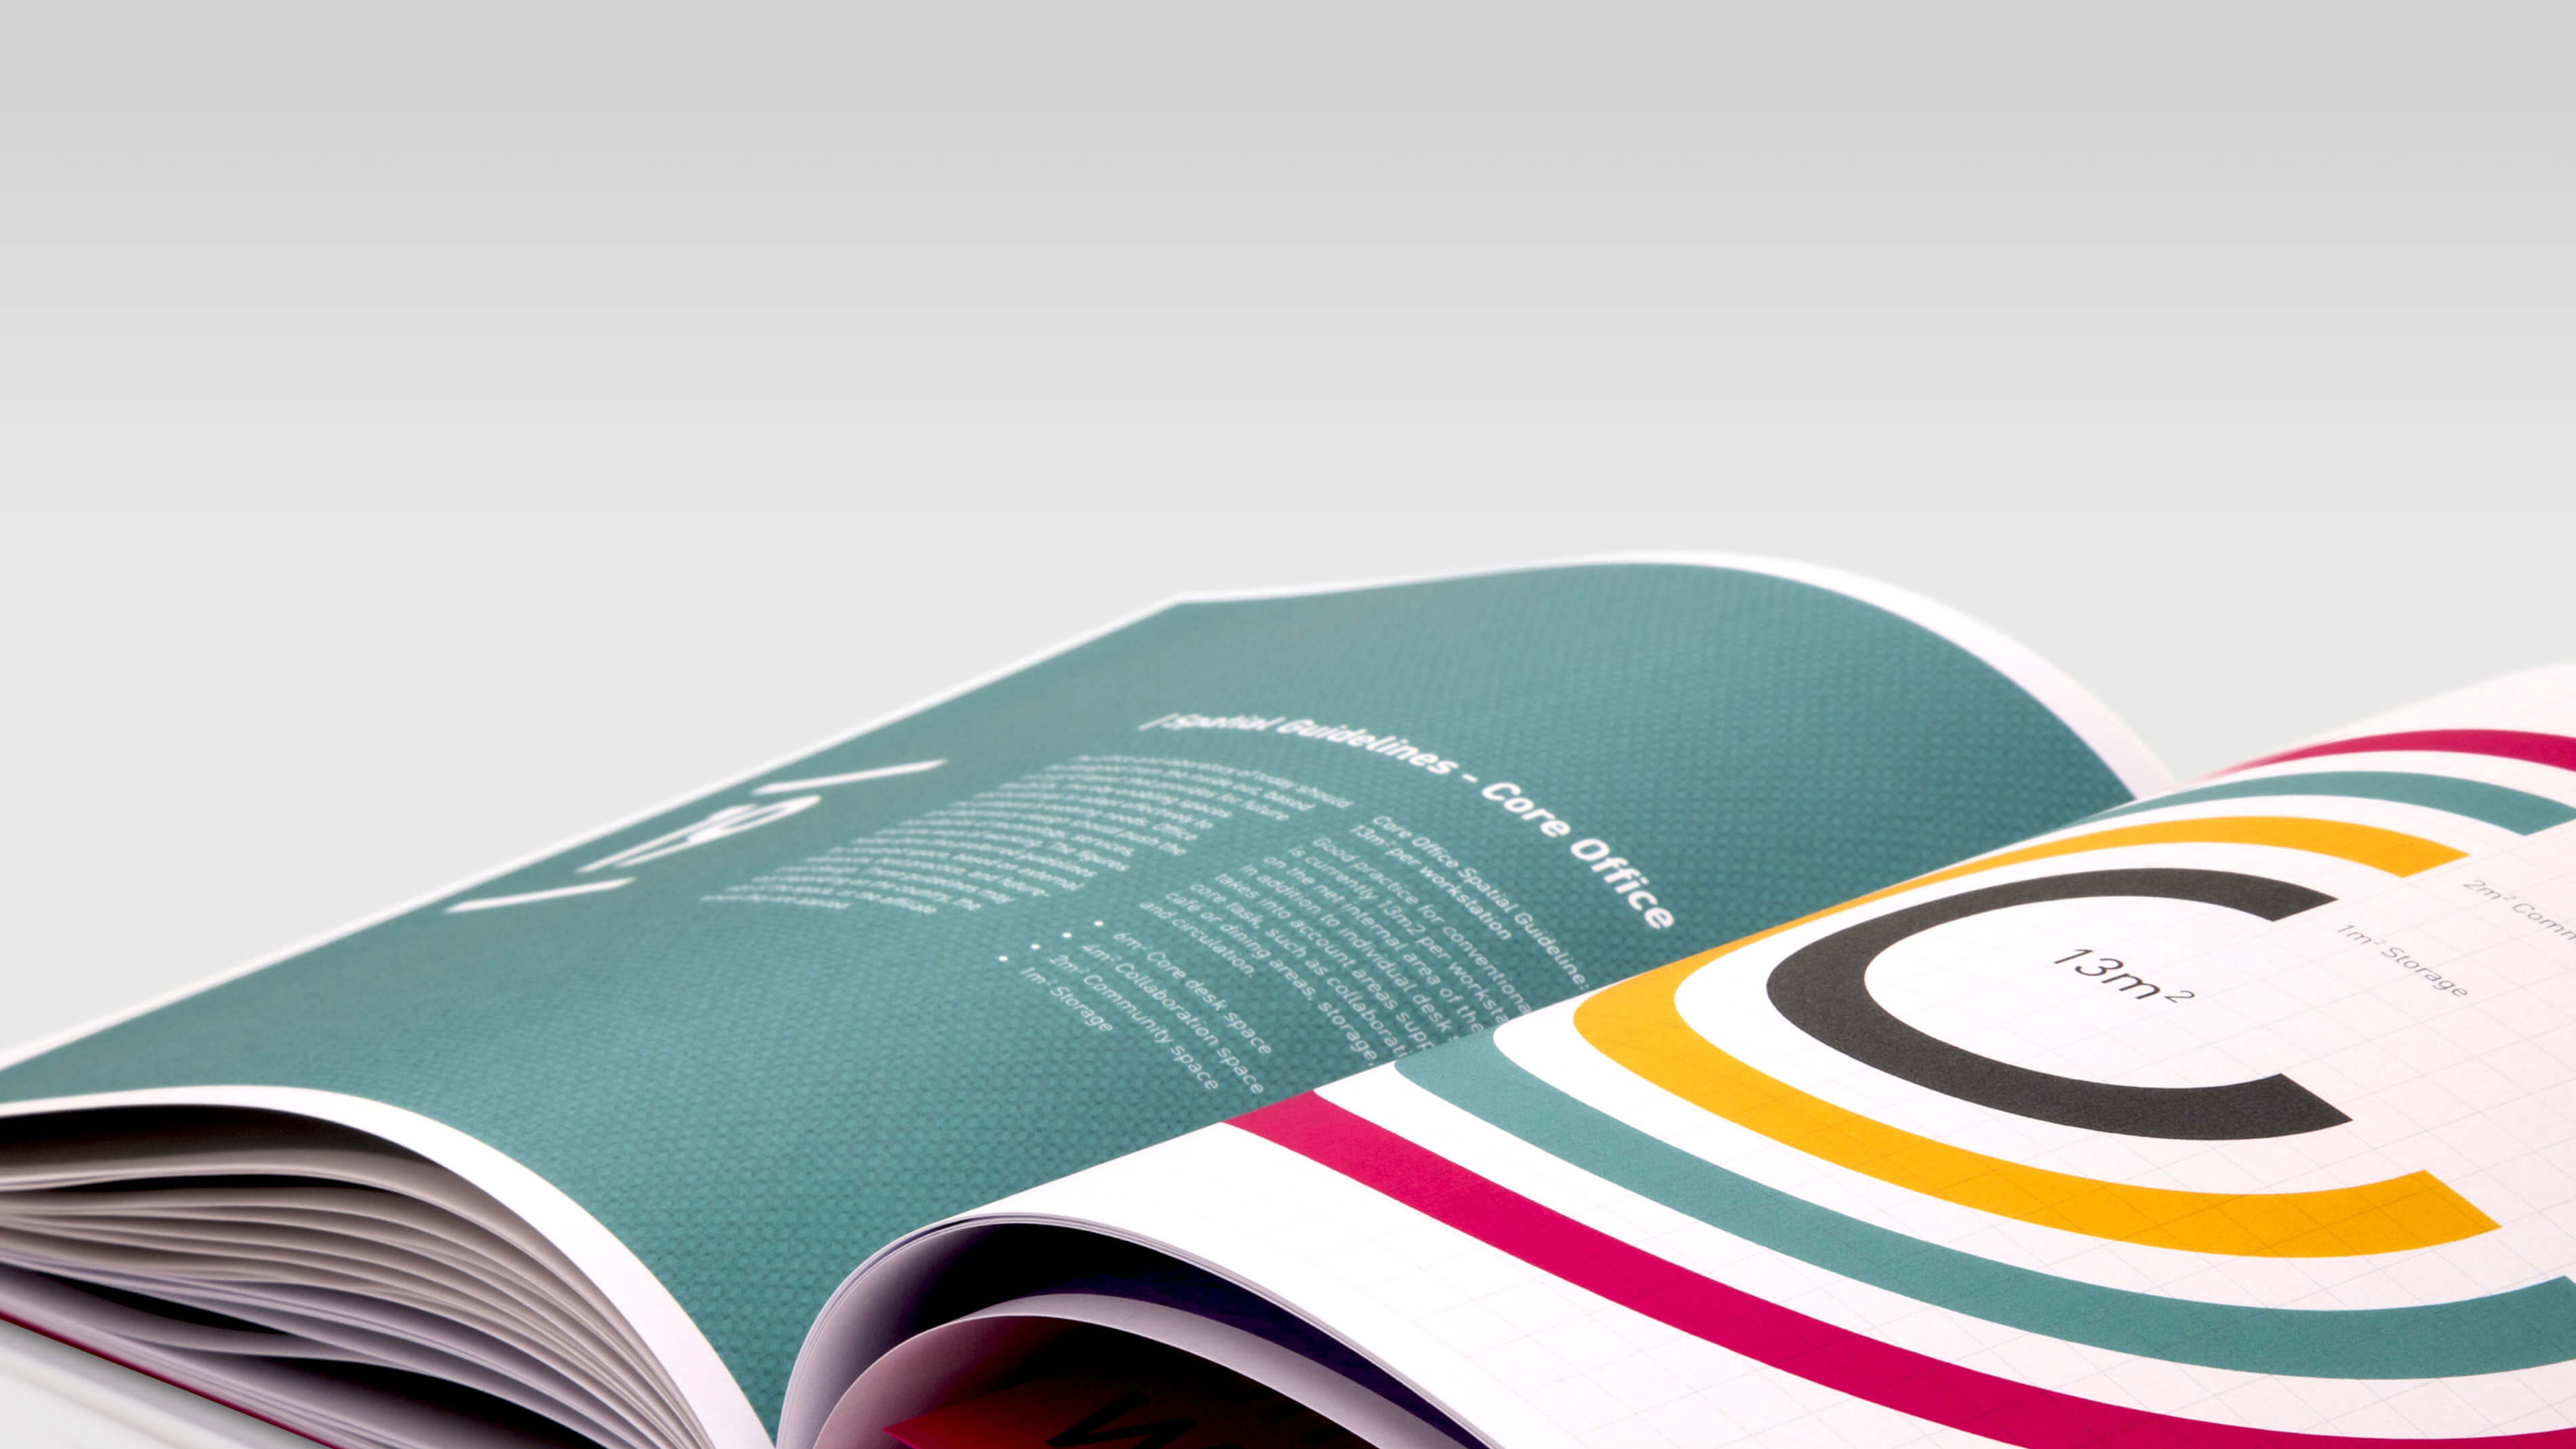 Brochure design to inspire creativity at work